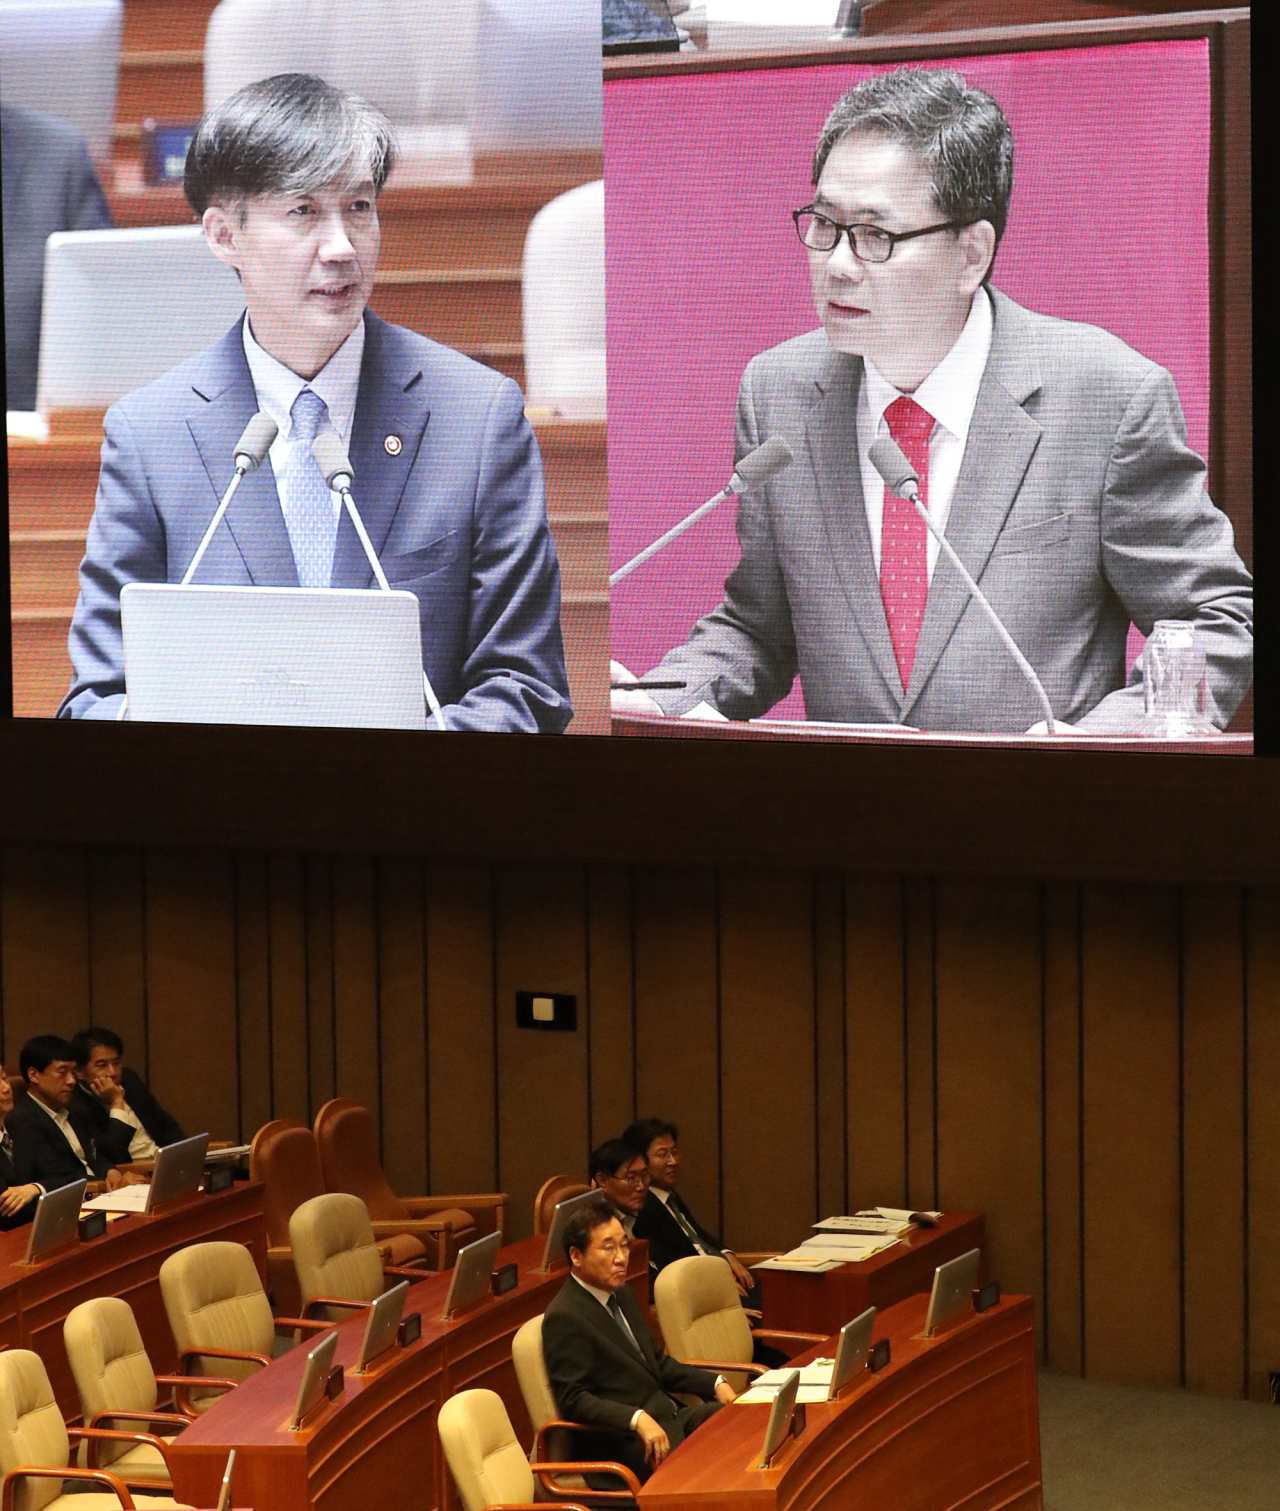 Prime Minister Lee Nak-yeon is looking at Justice Minister Cho Kuk answering questions from Rep. Kwak Sang-do of the Liberty Korea Party during a parliamentary interpellation session on Thursday. (Yonhap)